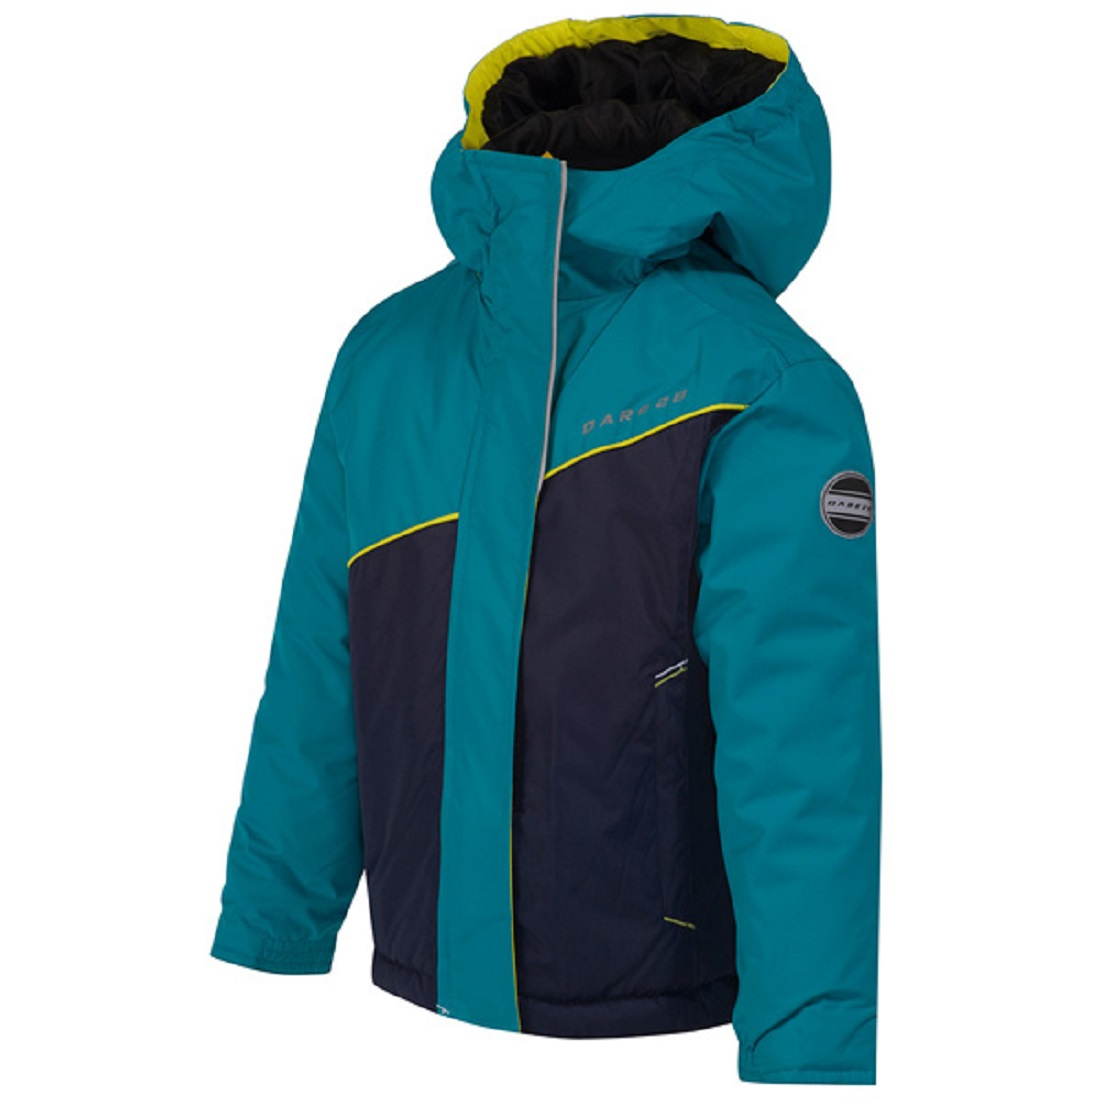 Dare2b-Kids-Unisex-Set-About-Waterproof-Breathable-Ared-5000-Hooded-Ski-Jacket